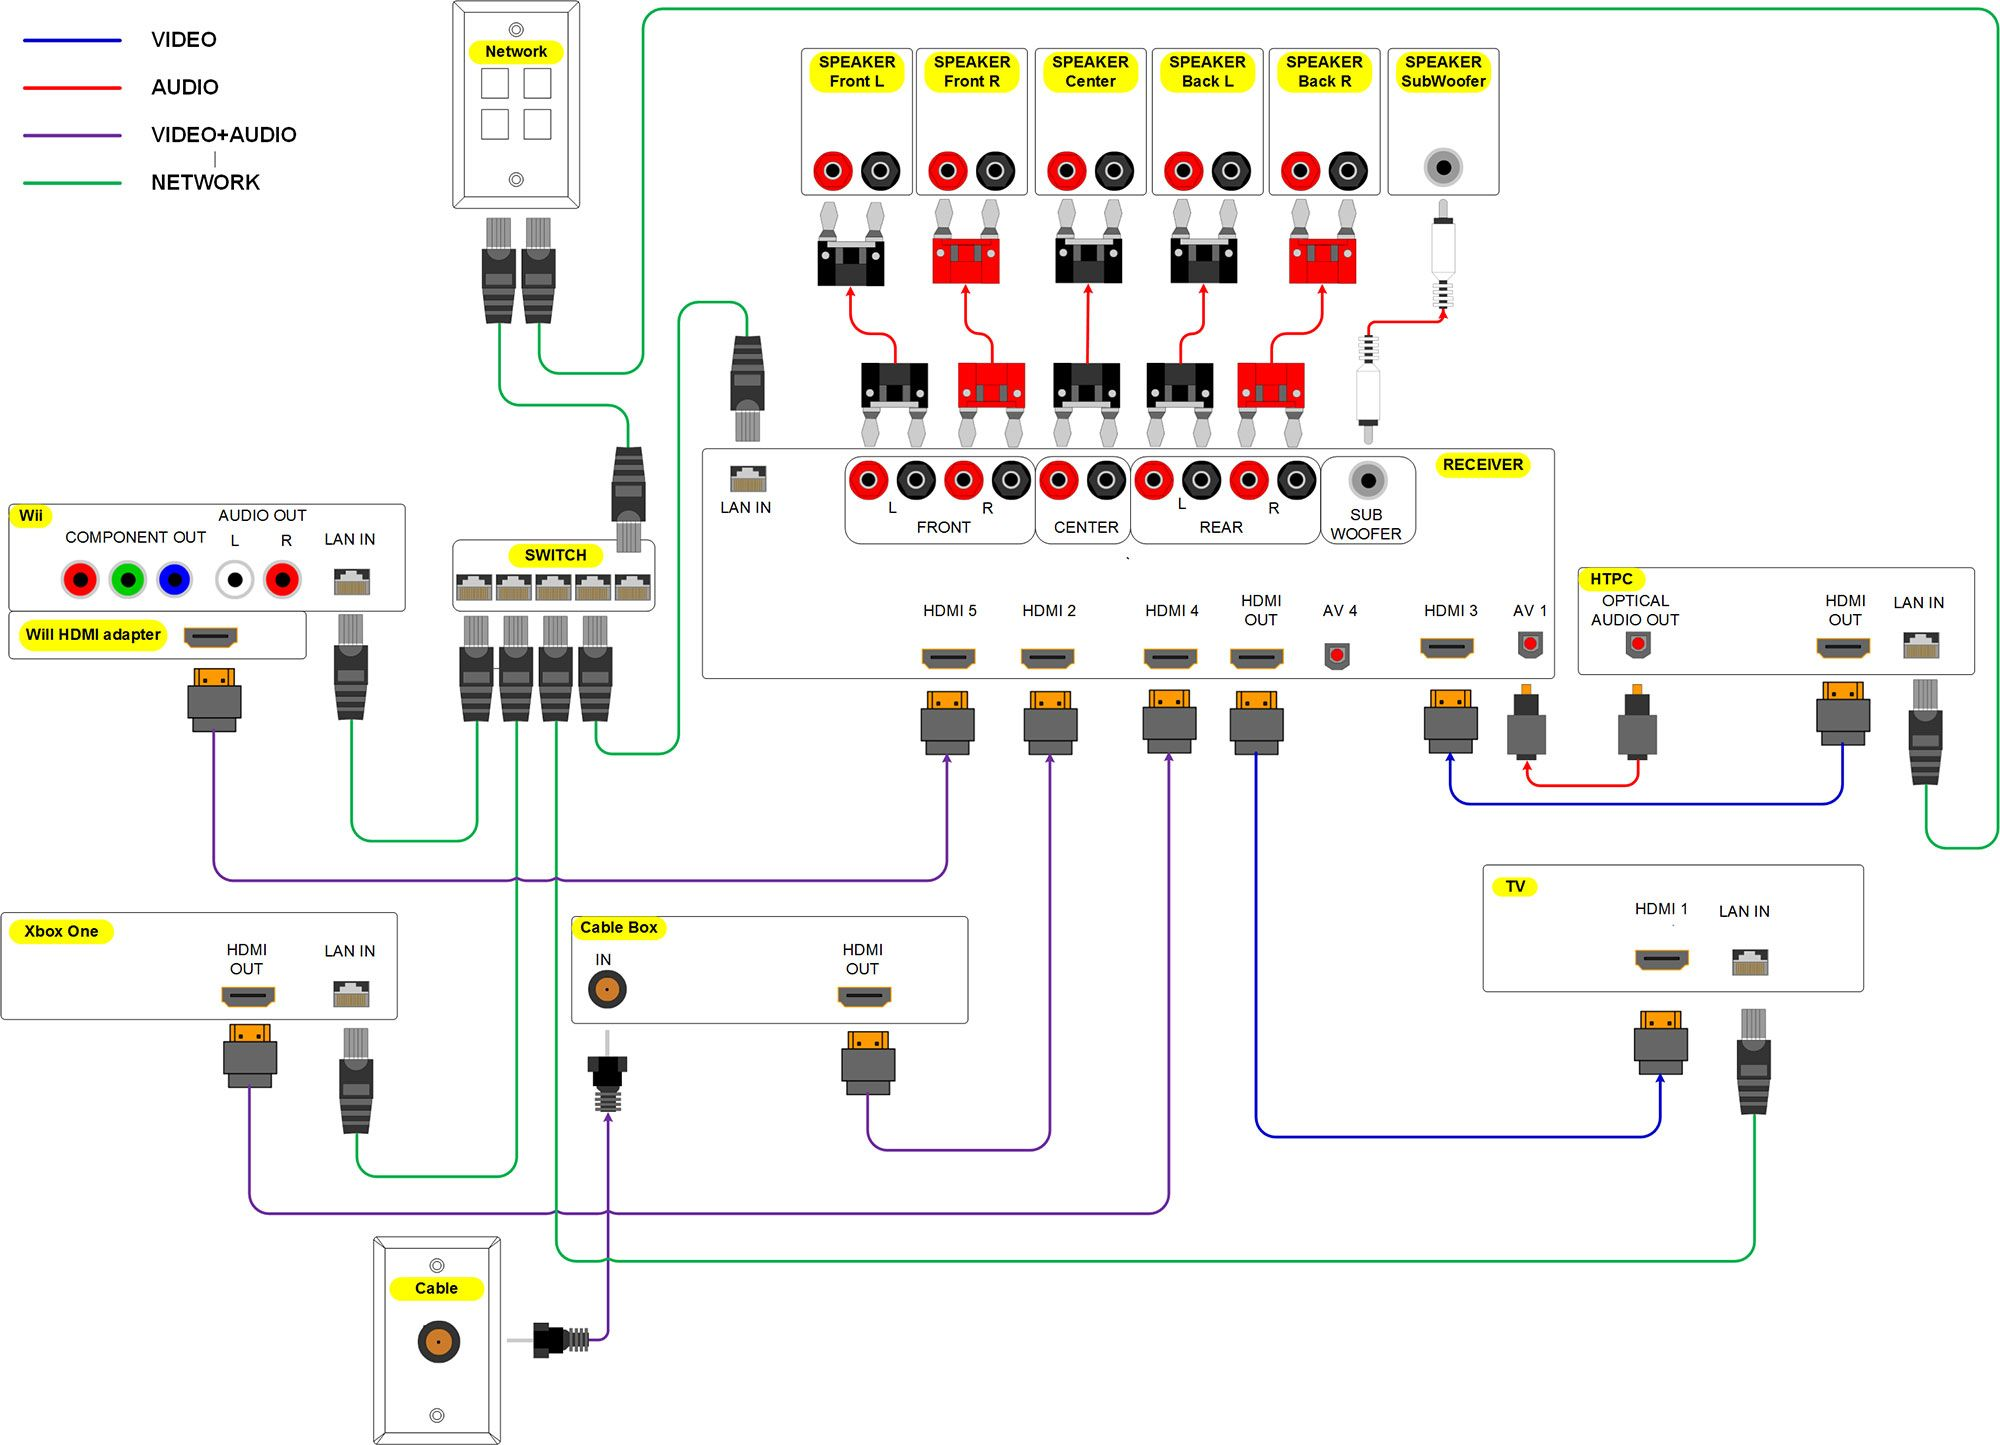 hight resolution of home theater wiring diagram click it to see the big 2000 pixel wide home audio wiring supplies home audio wiring